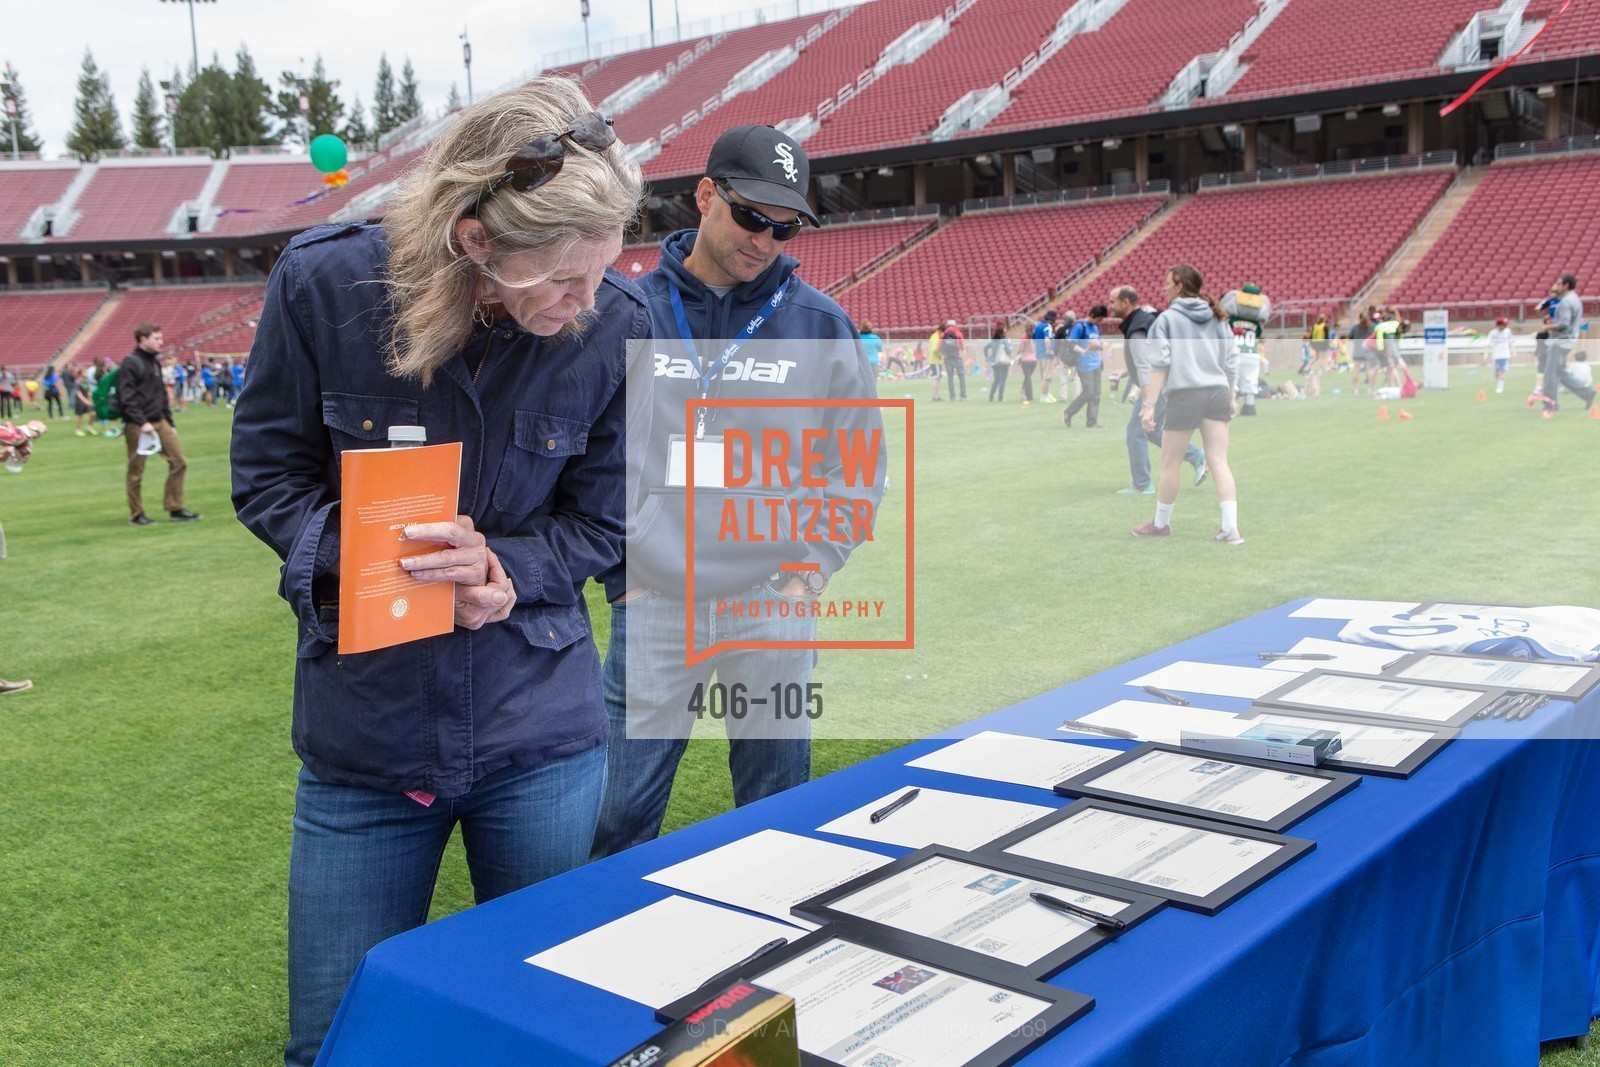 atmosphere, Children's Champions, May 16th, 2015, Photo,Drew Altizer, Drew Altizer Photography, full-service event agency, private events, San Francisco photographer, photographer California